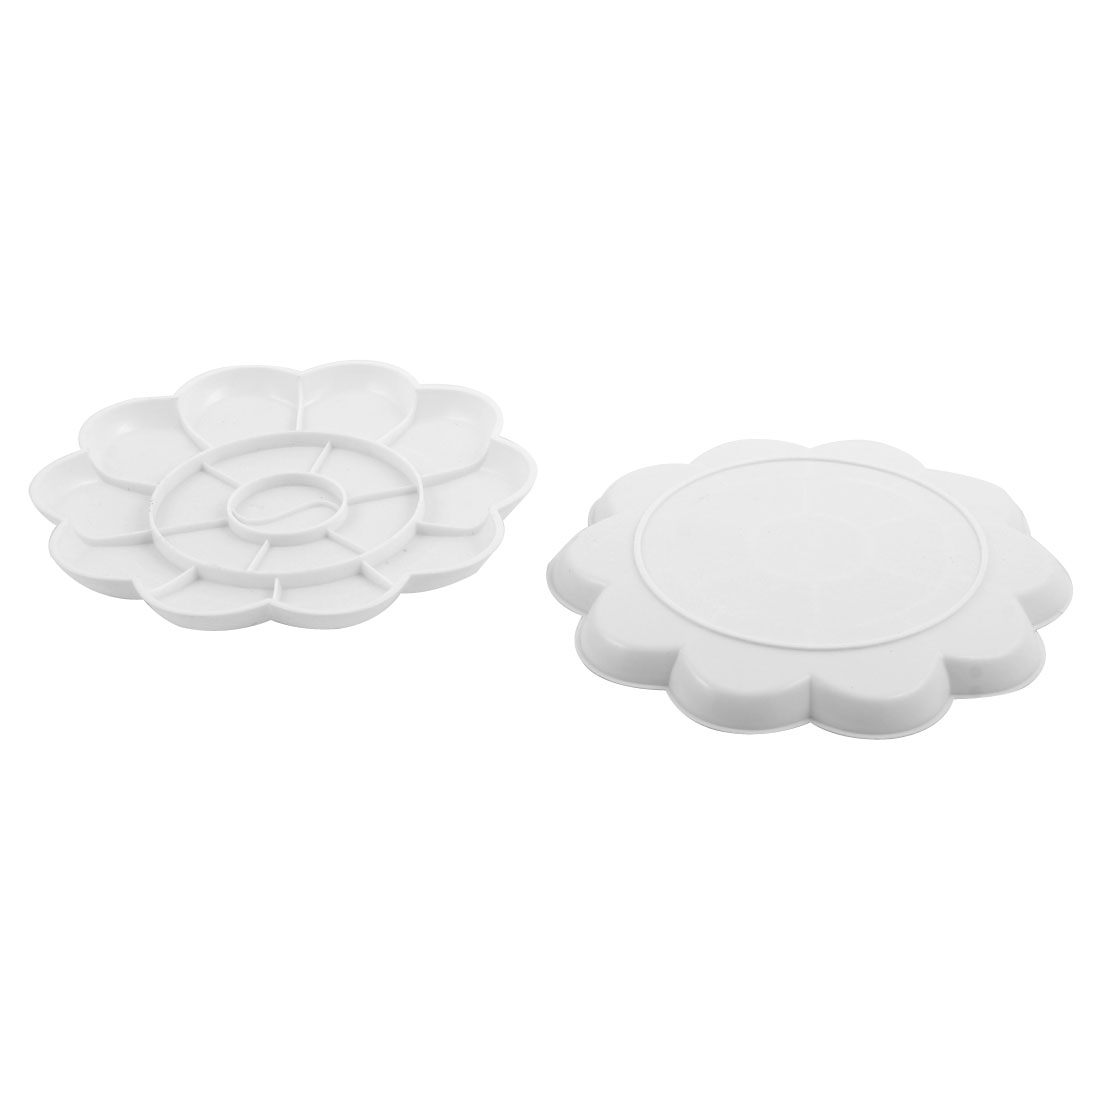 Students Plastic 18 Compartments Paint Painting Mixing Palette Plate White 2pcs